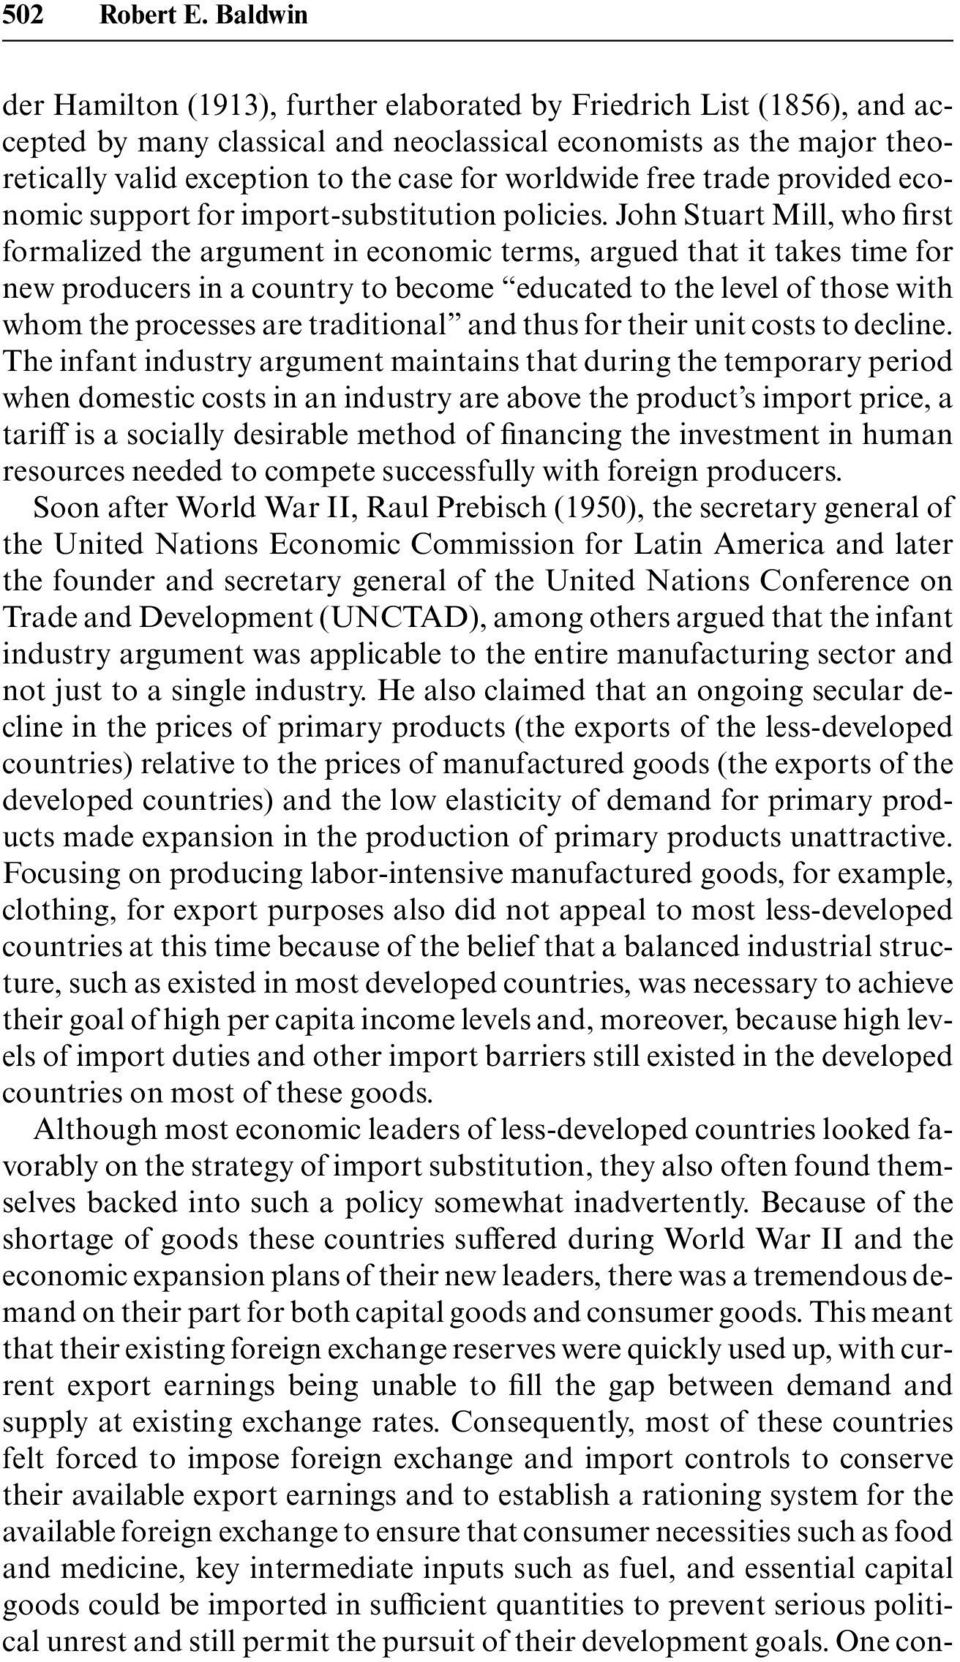 worldwide free trade provided economic support for import-substitution policies.